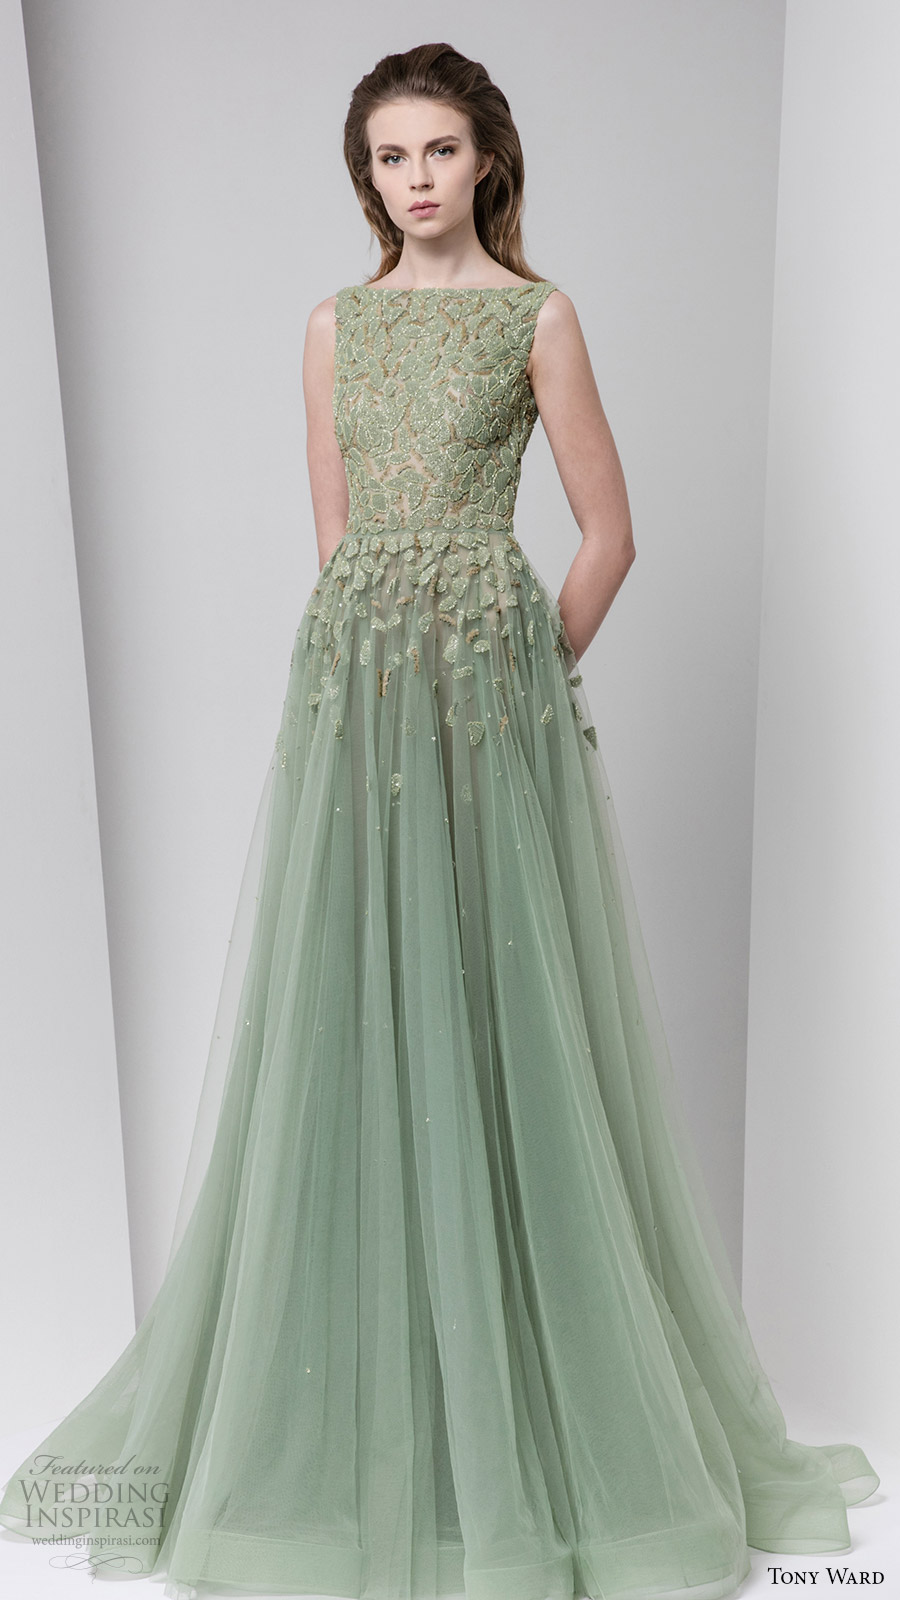 Tony ward fall 2016 ready to wear dresses wedding inspirasi for How to dress for an evening wedding